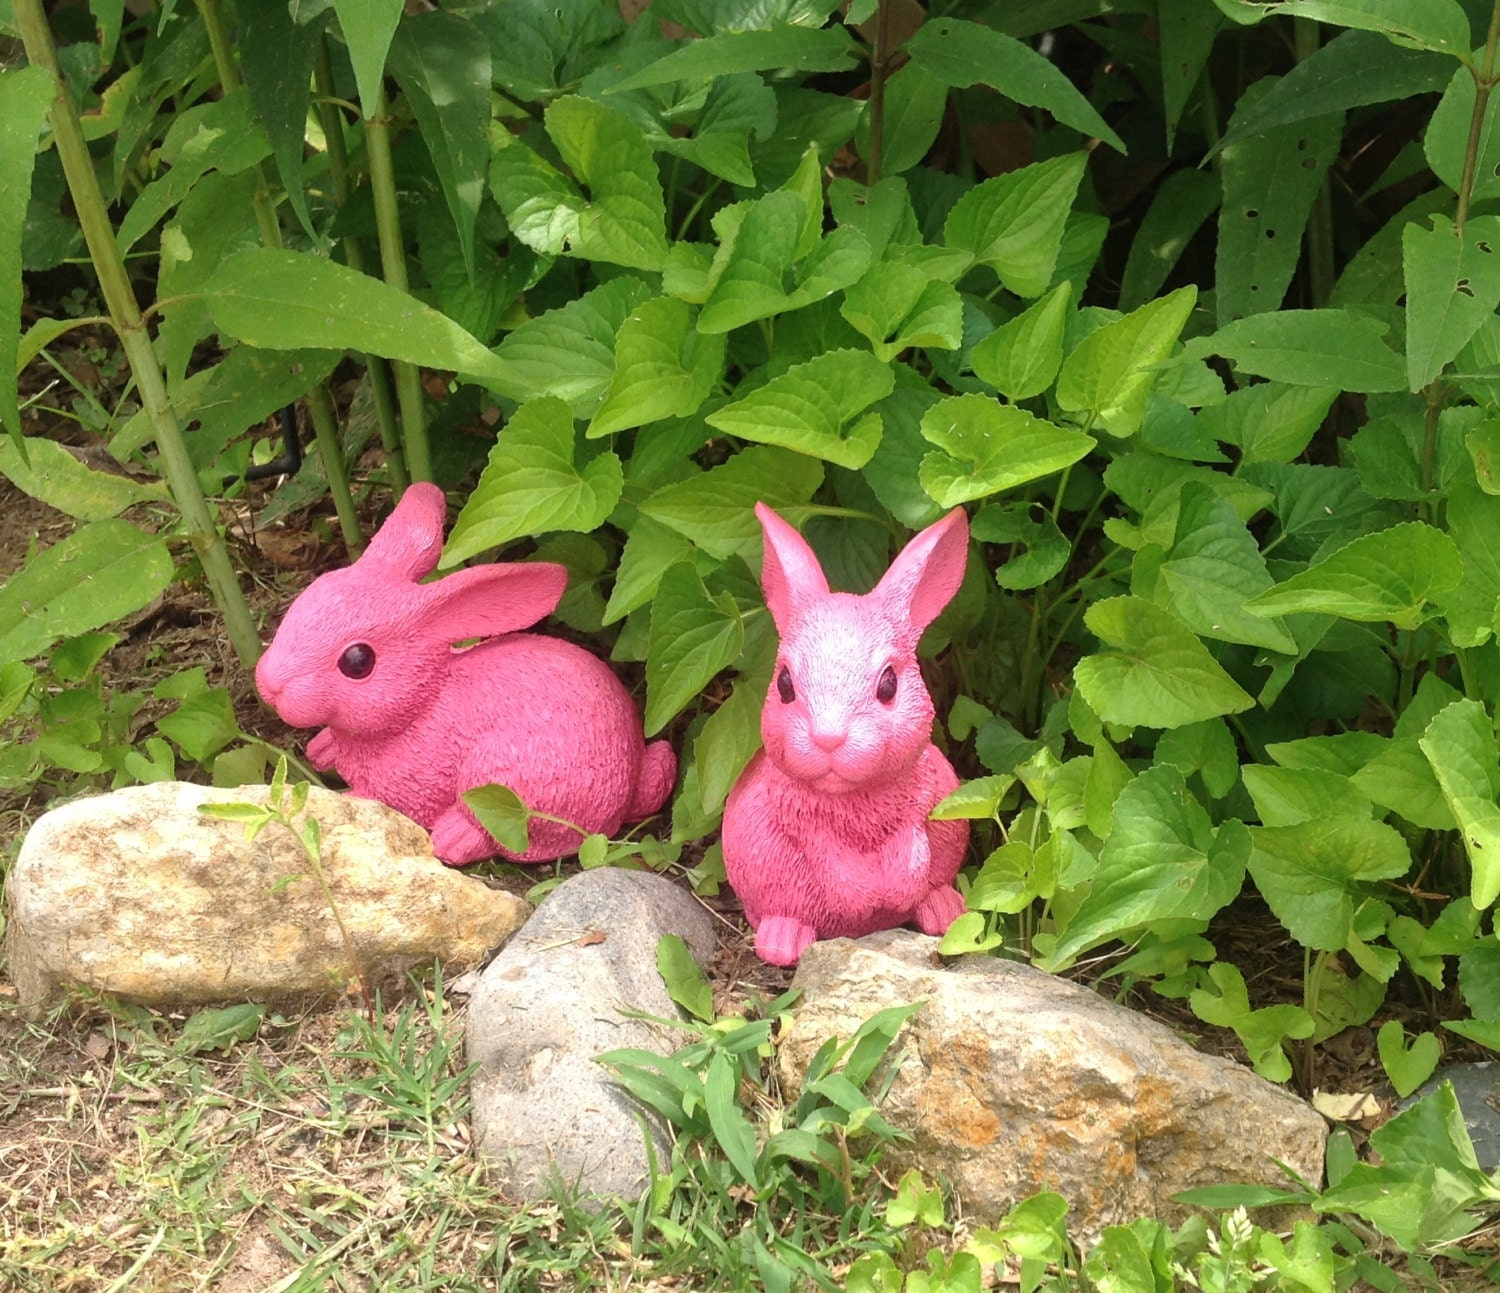 Garden bunnies set of 2 whimsy pink rabbit statues outdoor for Whimsical garden statues